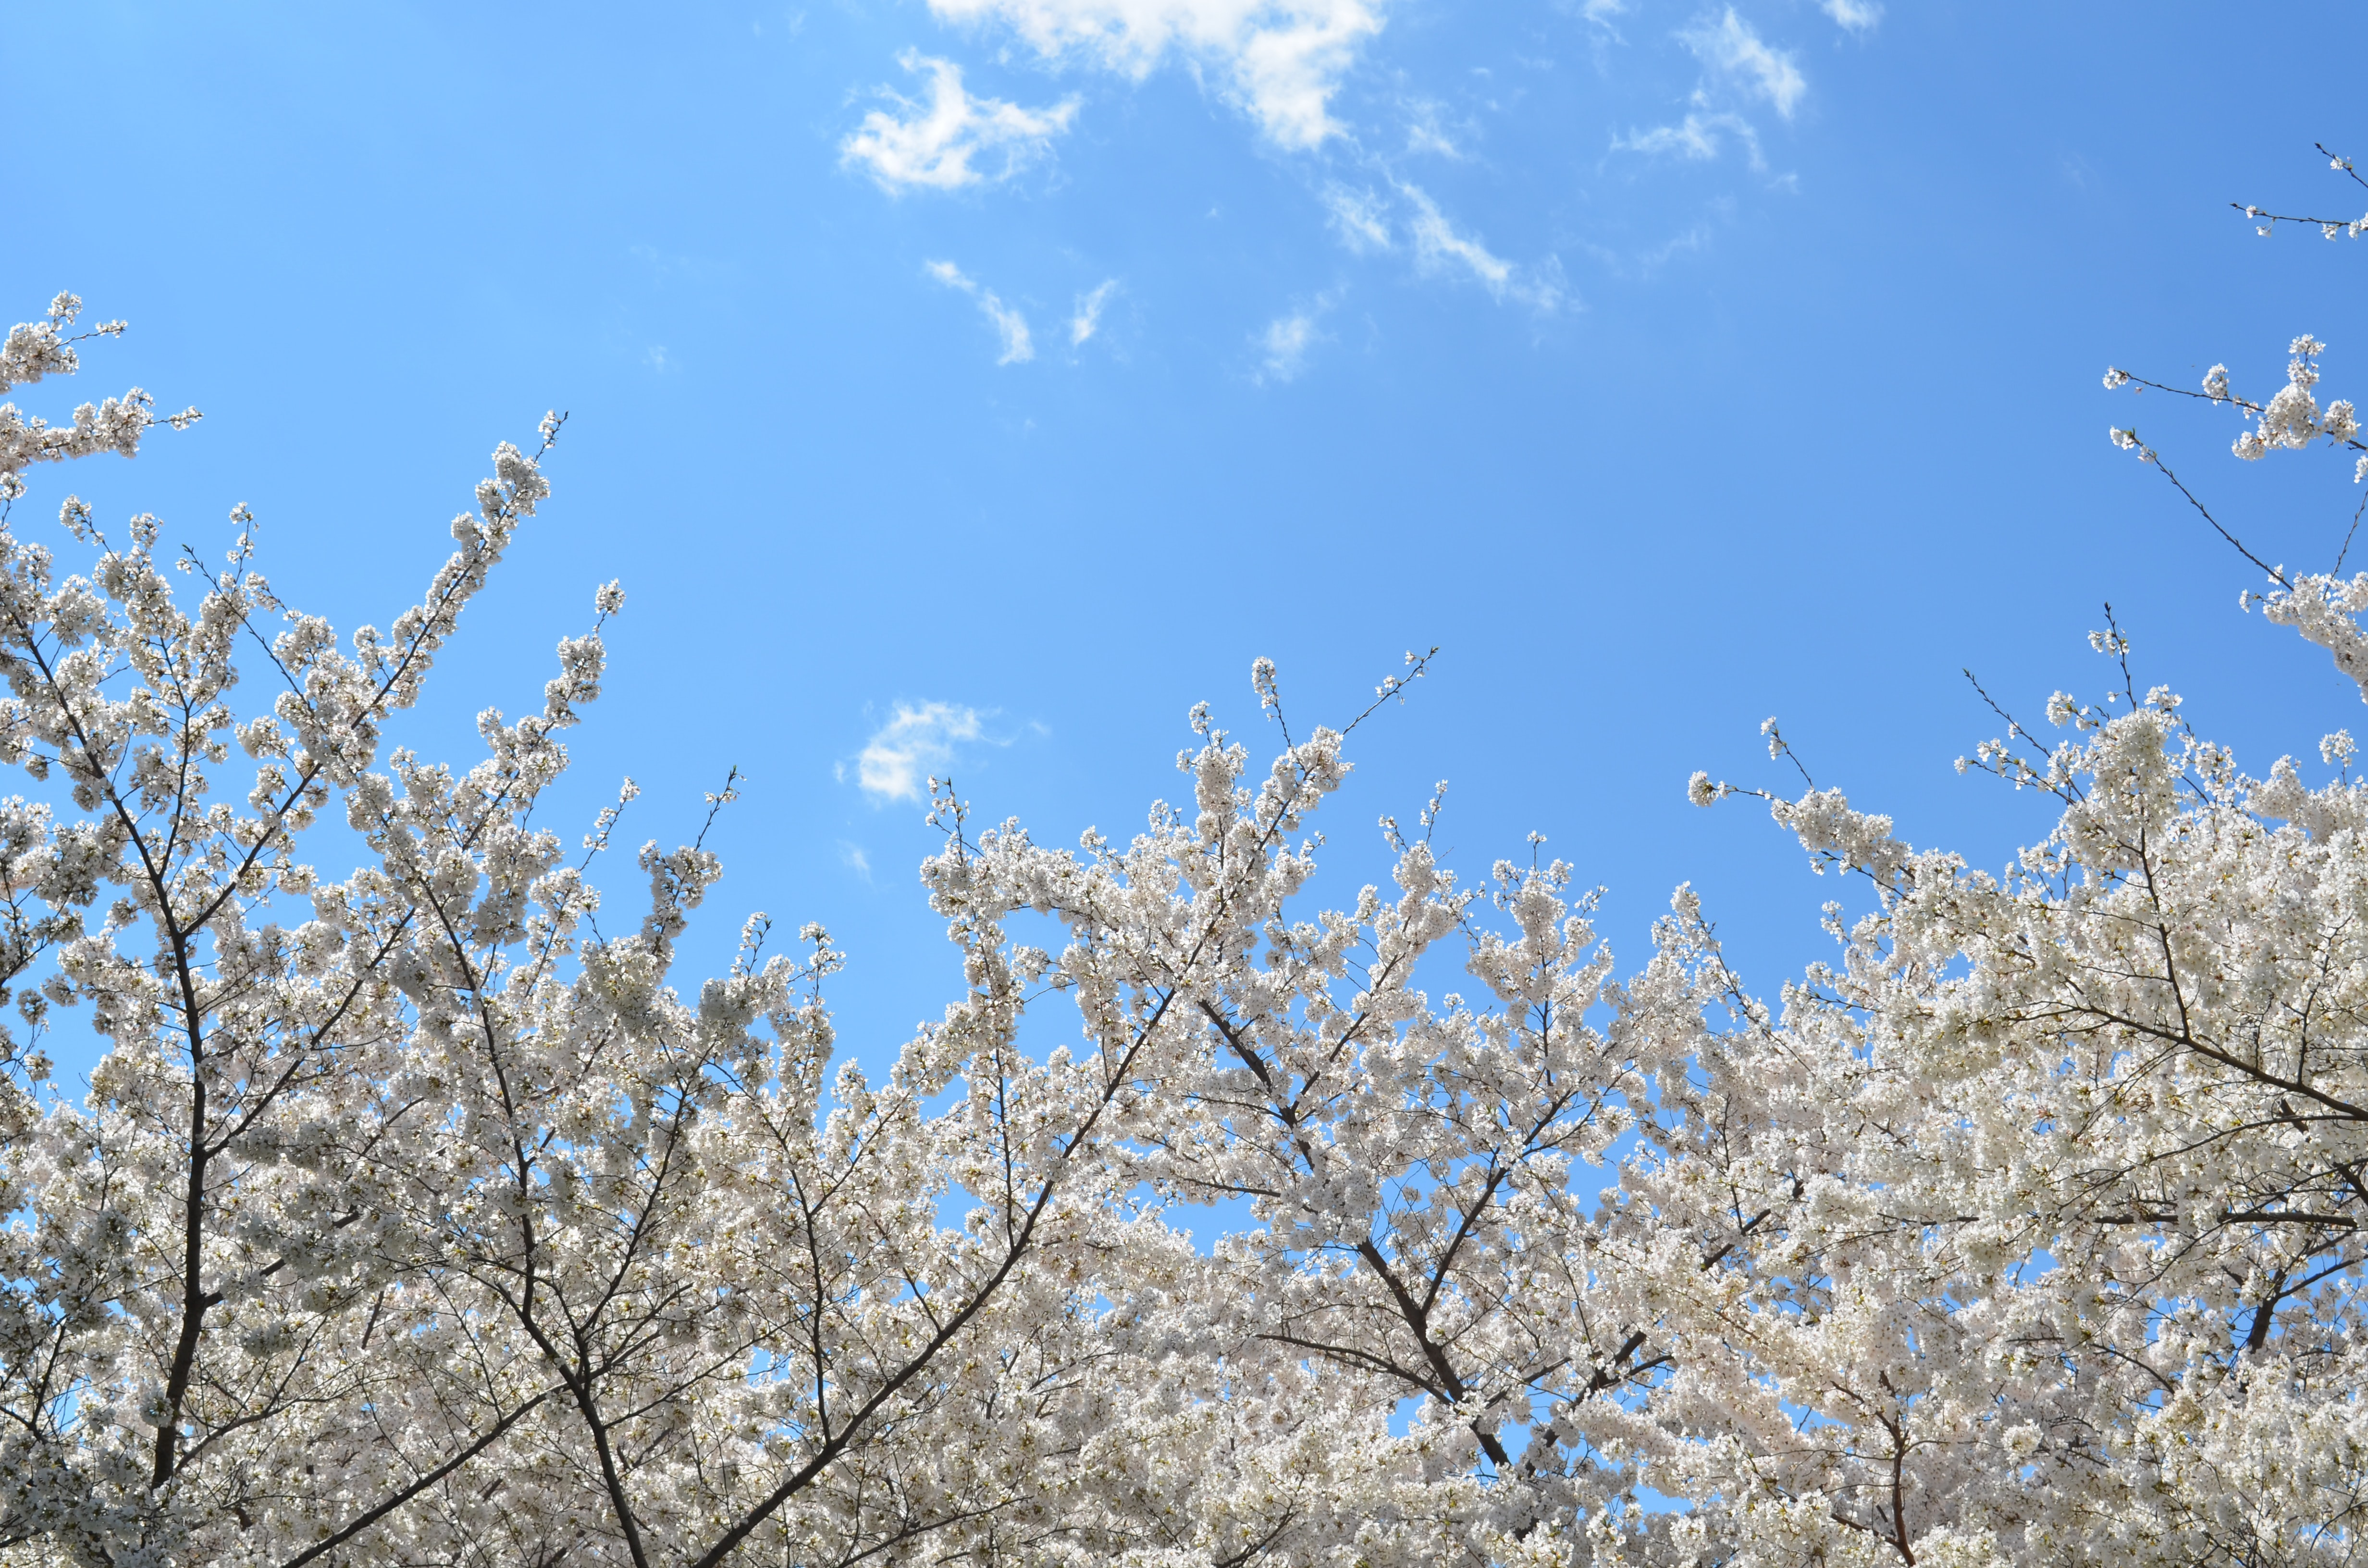 Trees with blossom in full bloom against clear blue sky